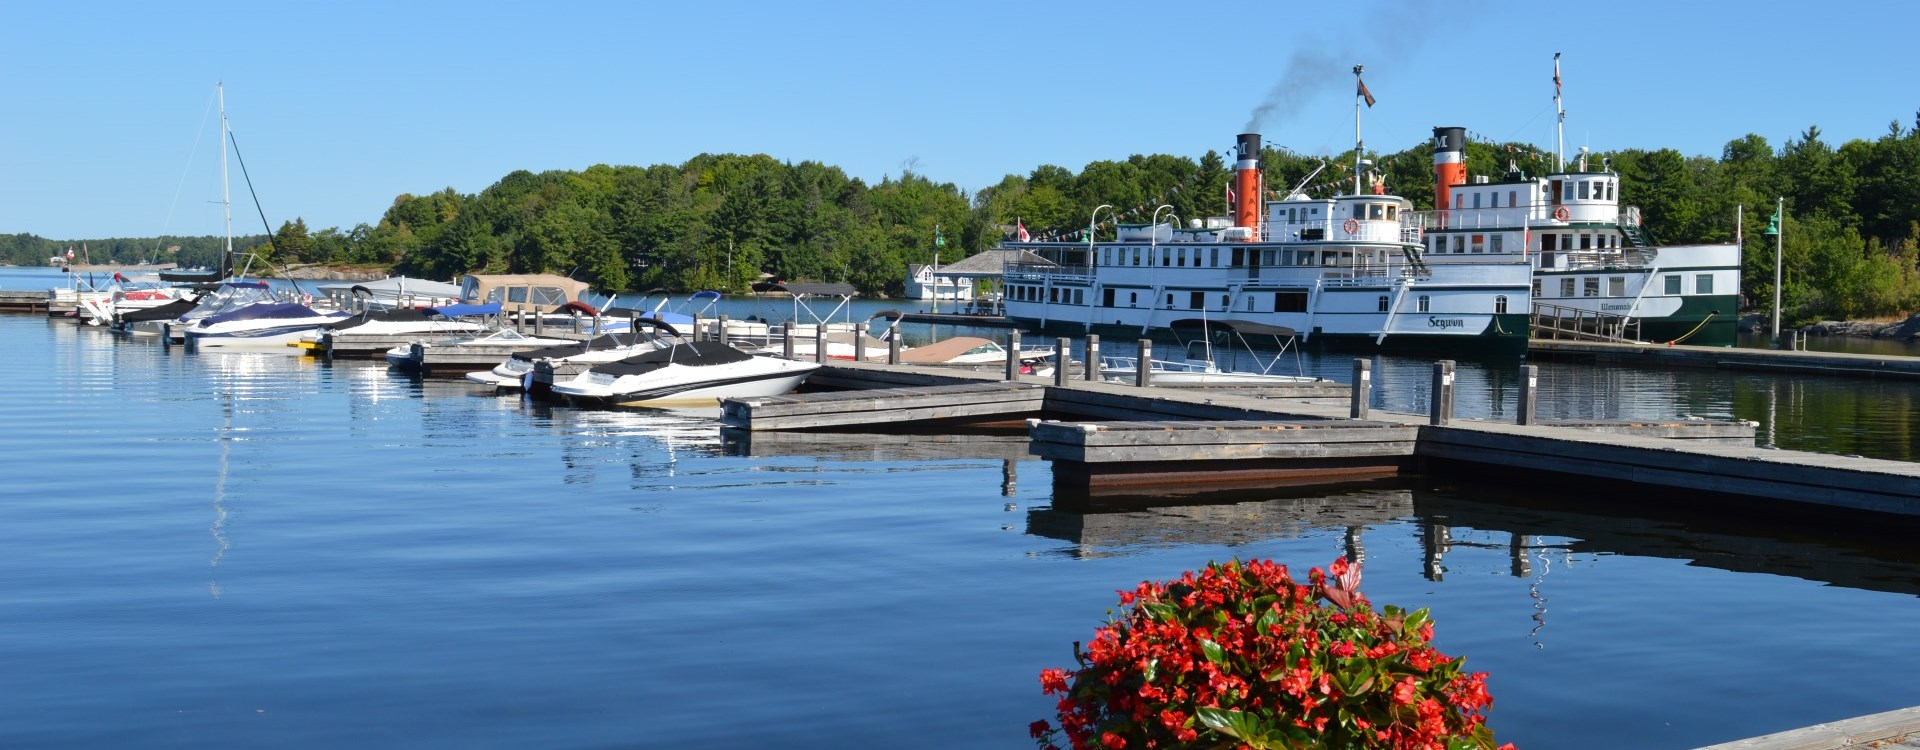 Scenic photo of the Muskoka Wharf and Muskoka Steamships